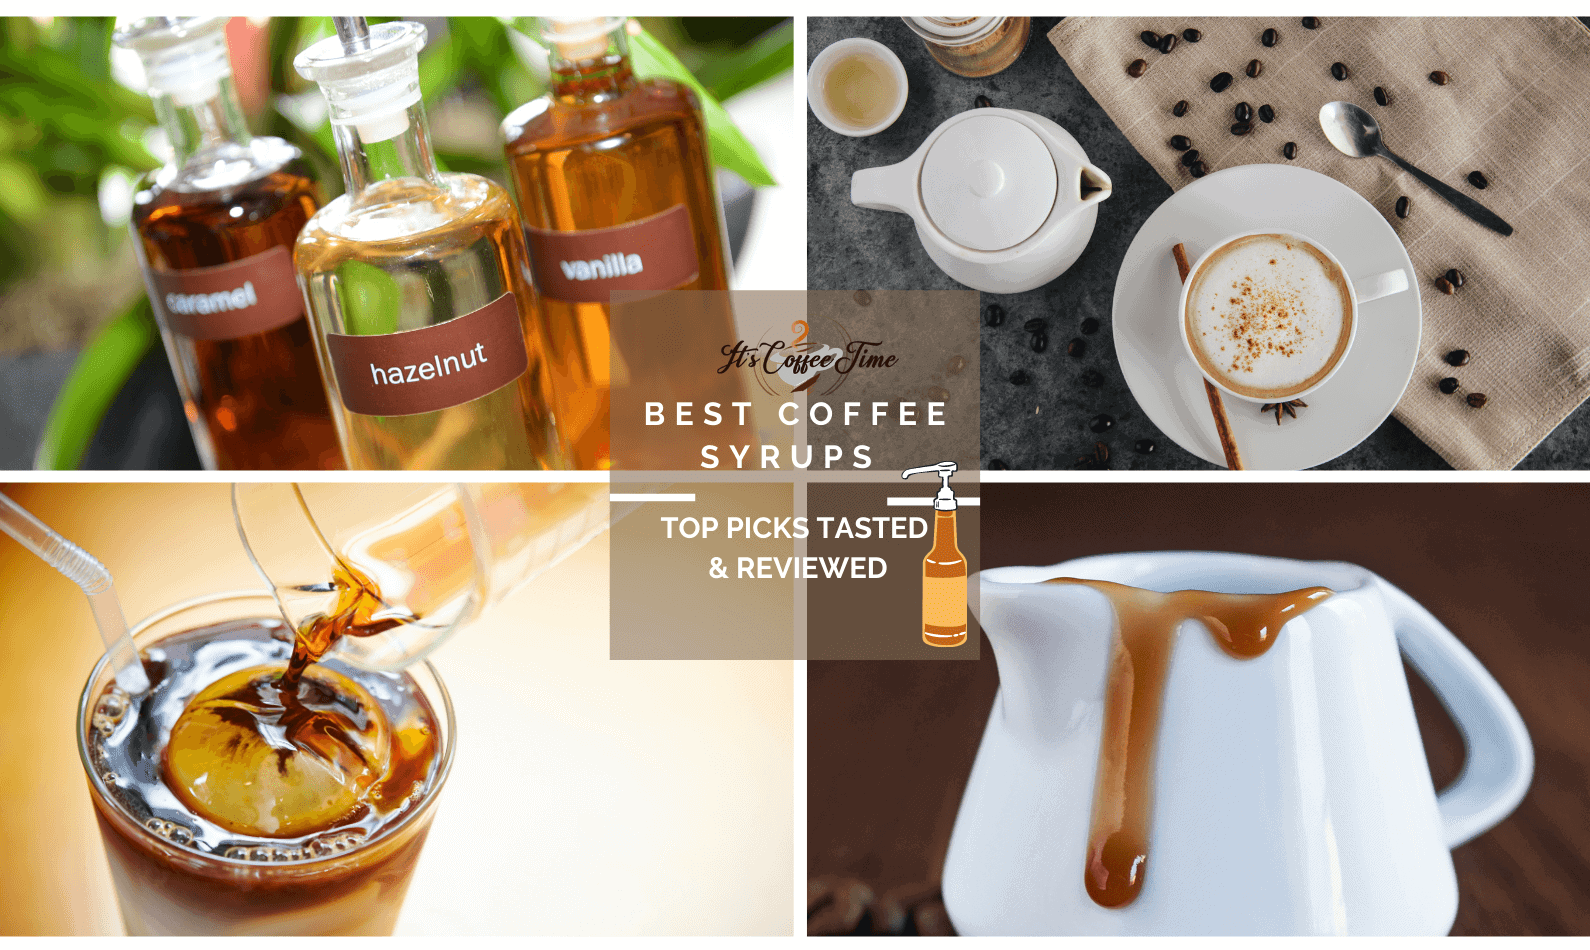 Best Coffee Syrups